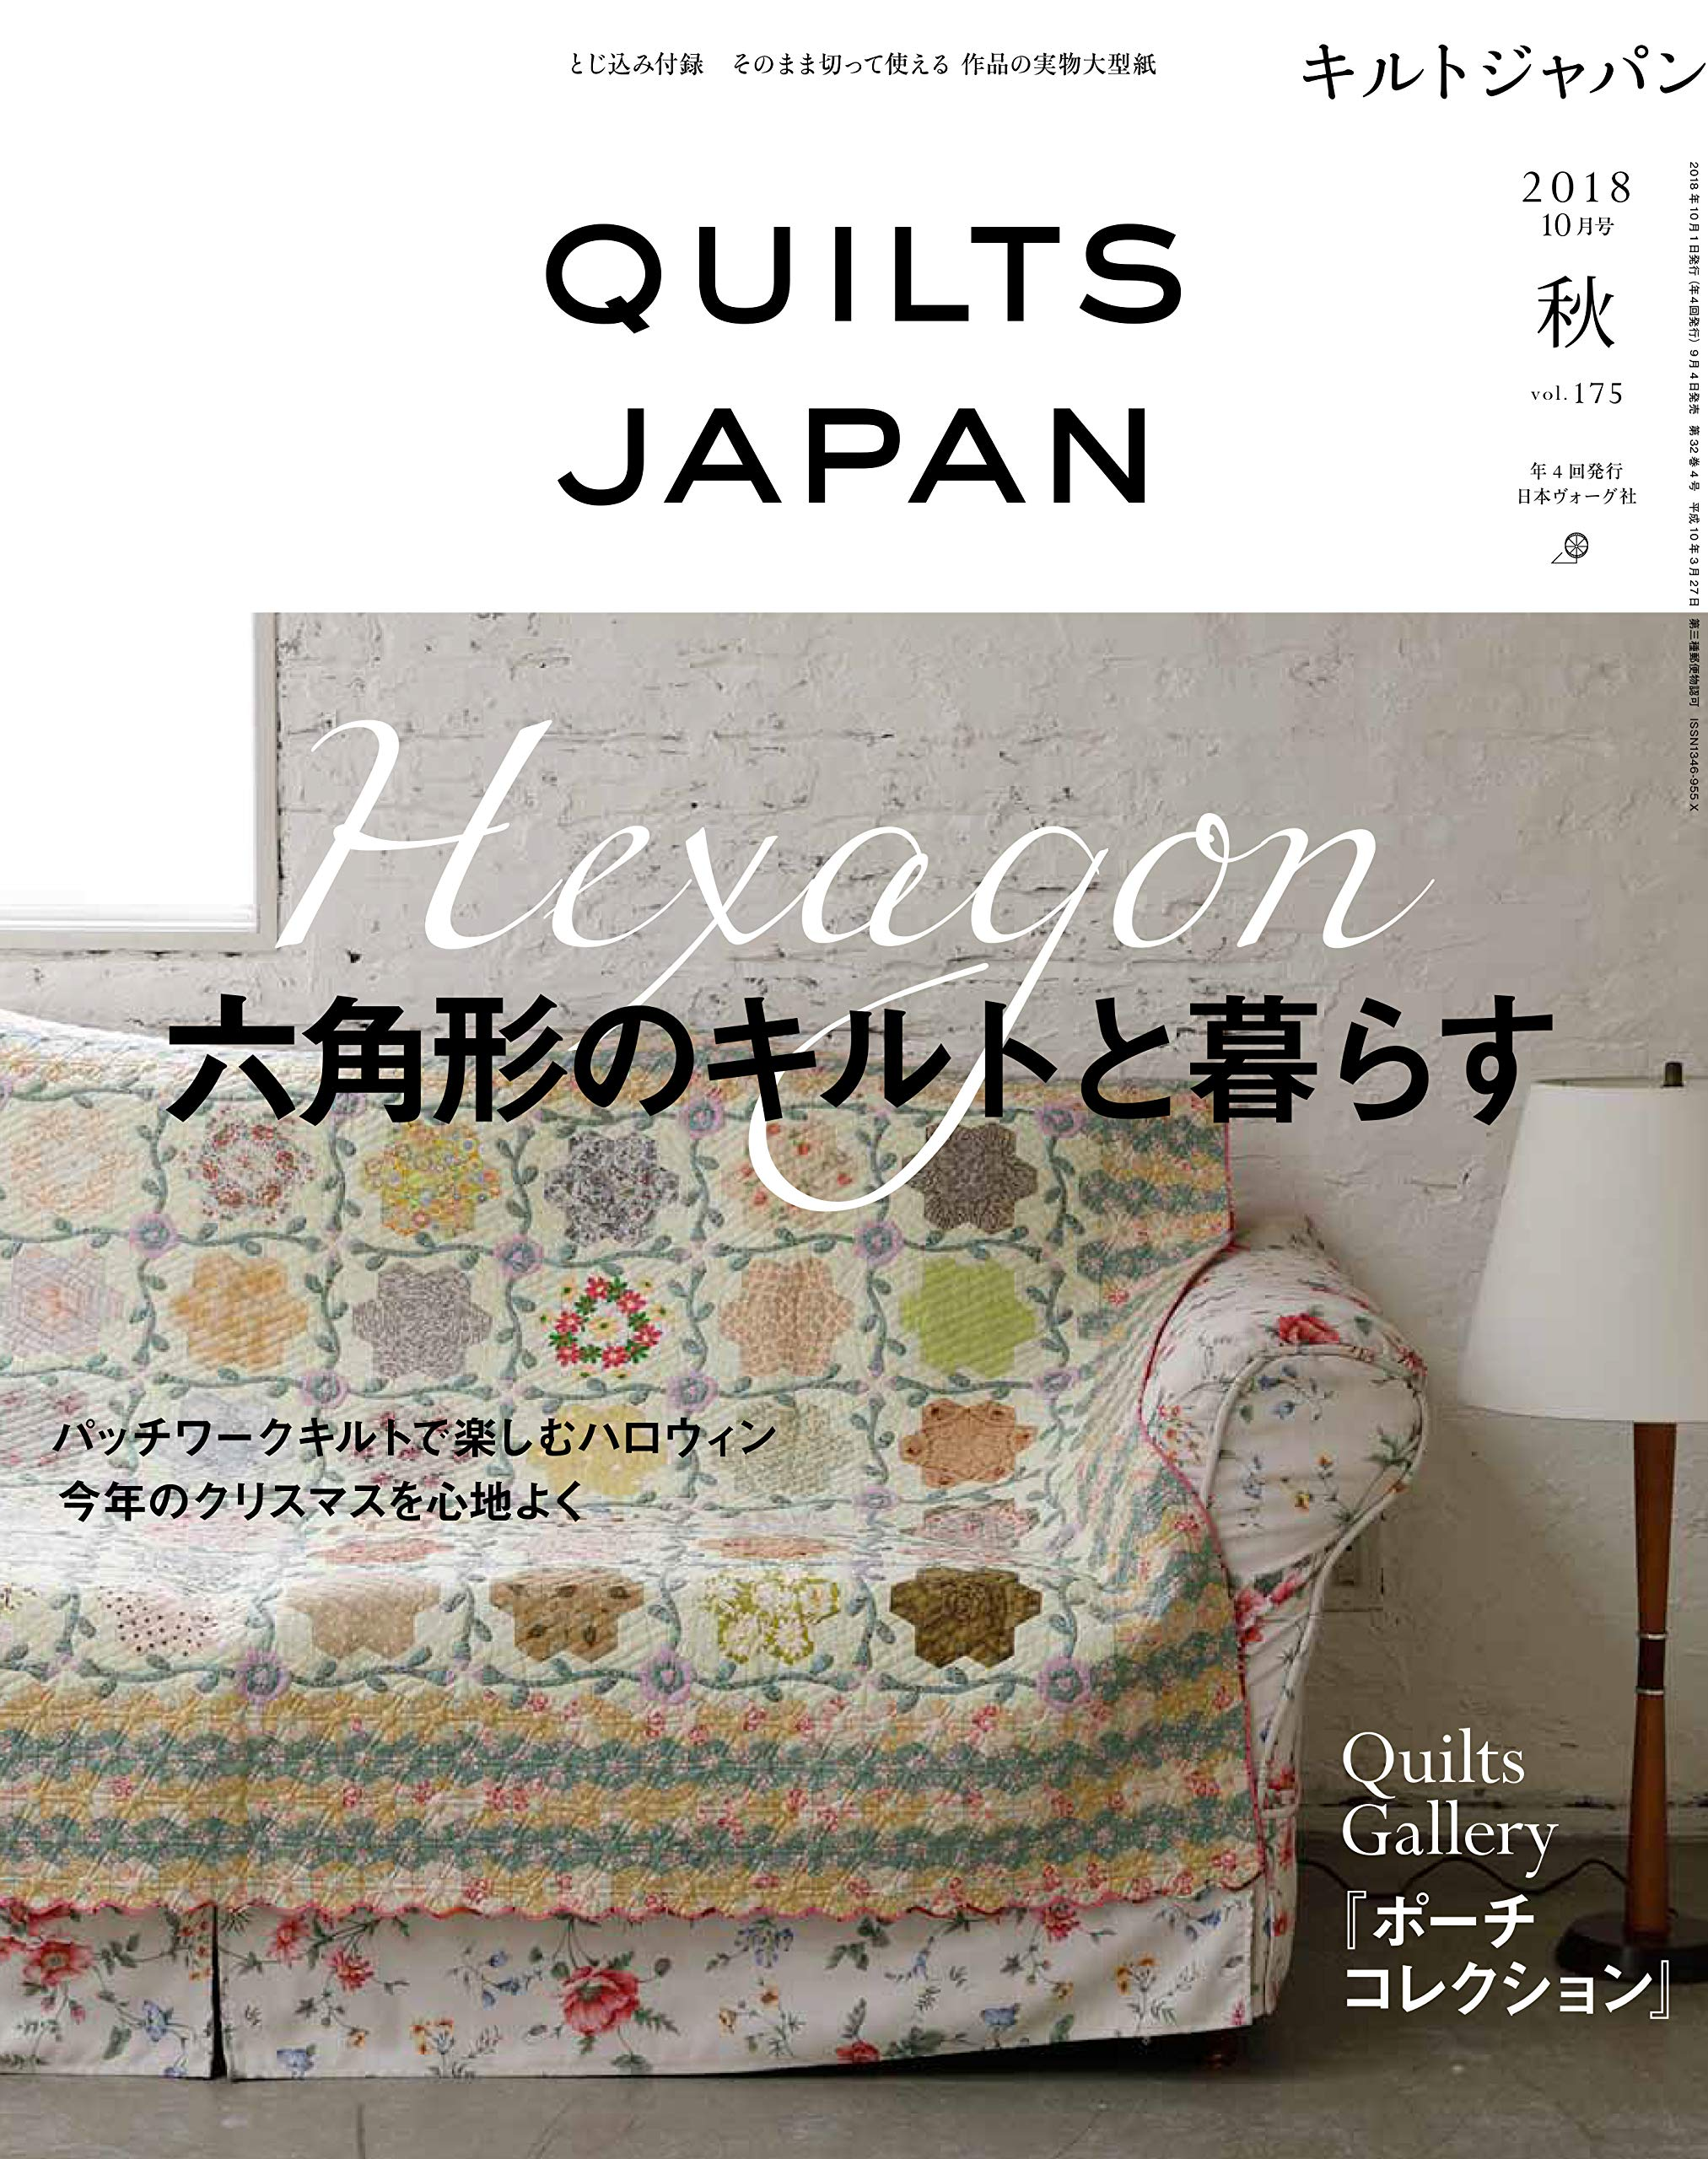 Quilt Japan October 2018 Autumn